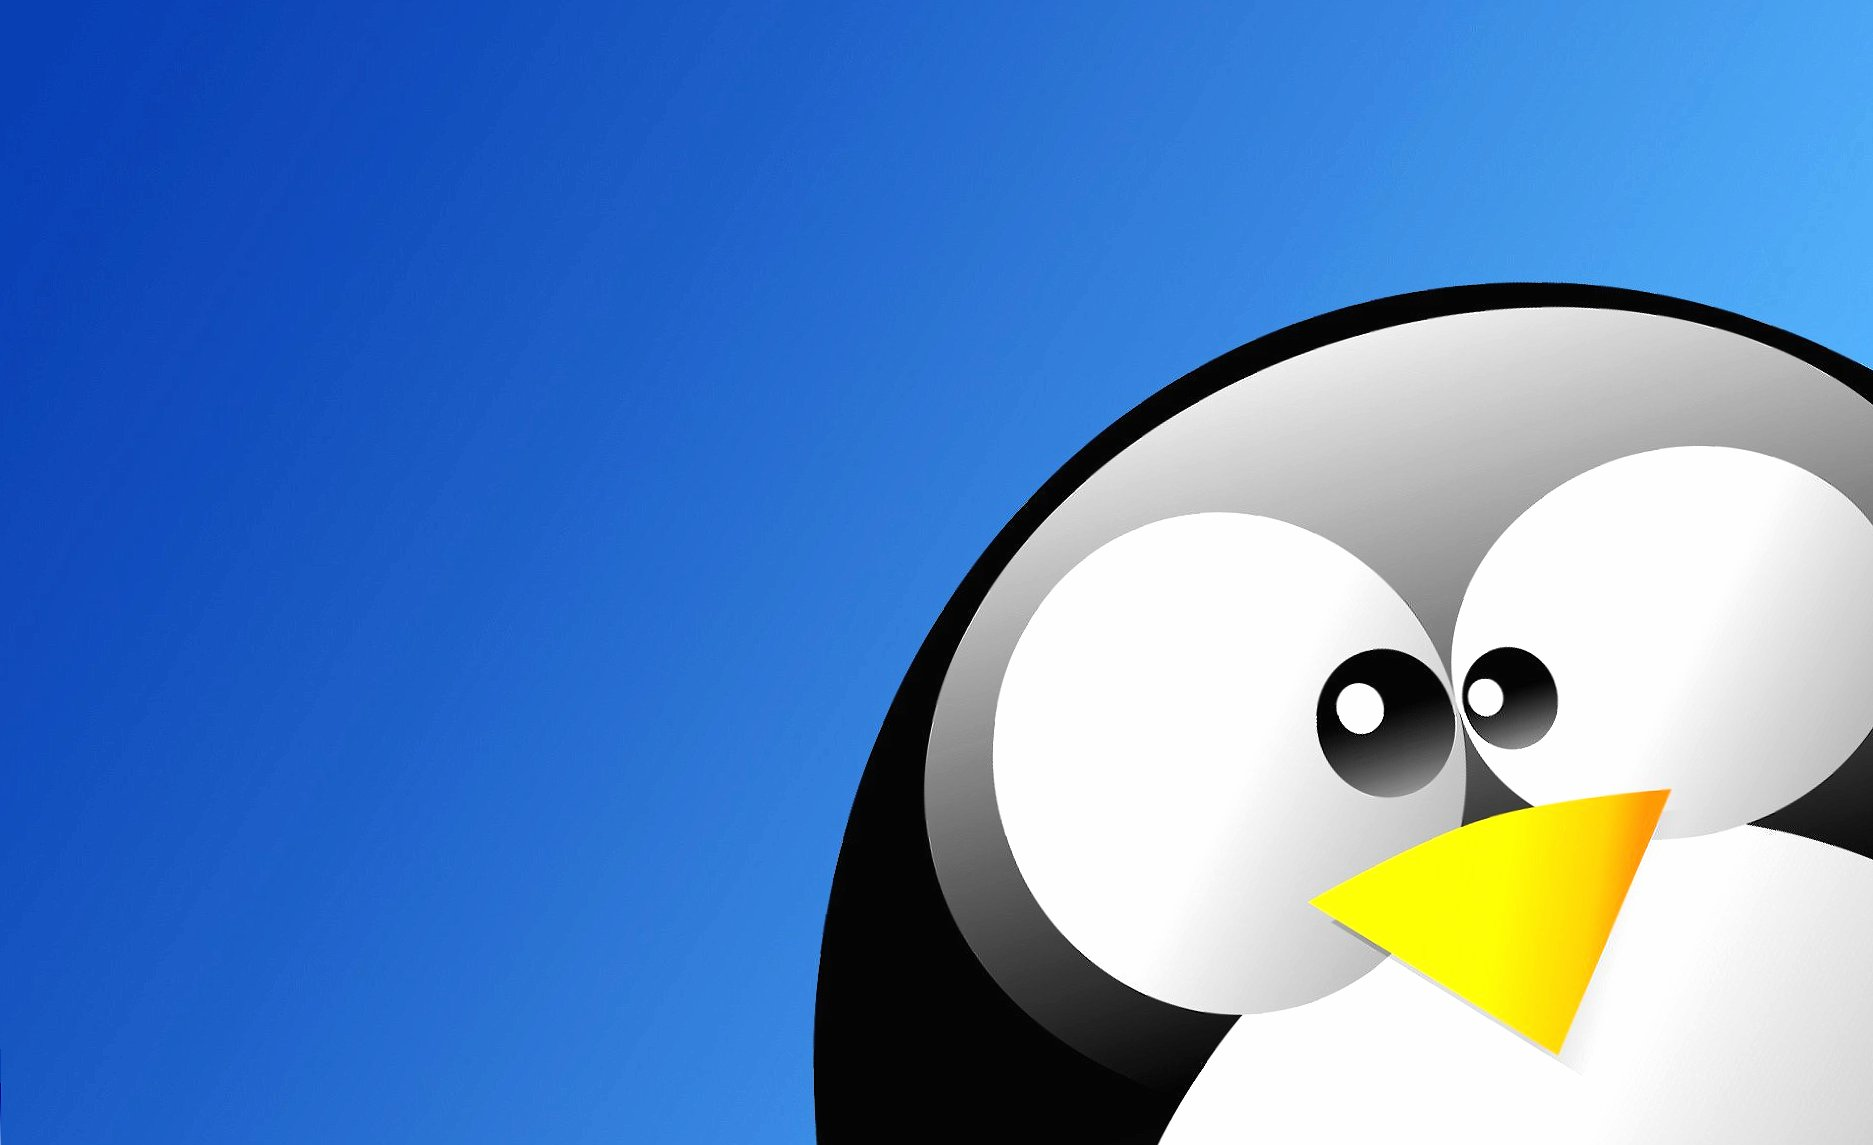 penguin linux wallpapers HD quality